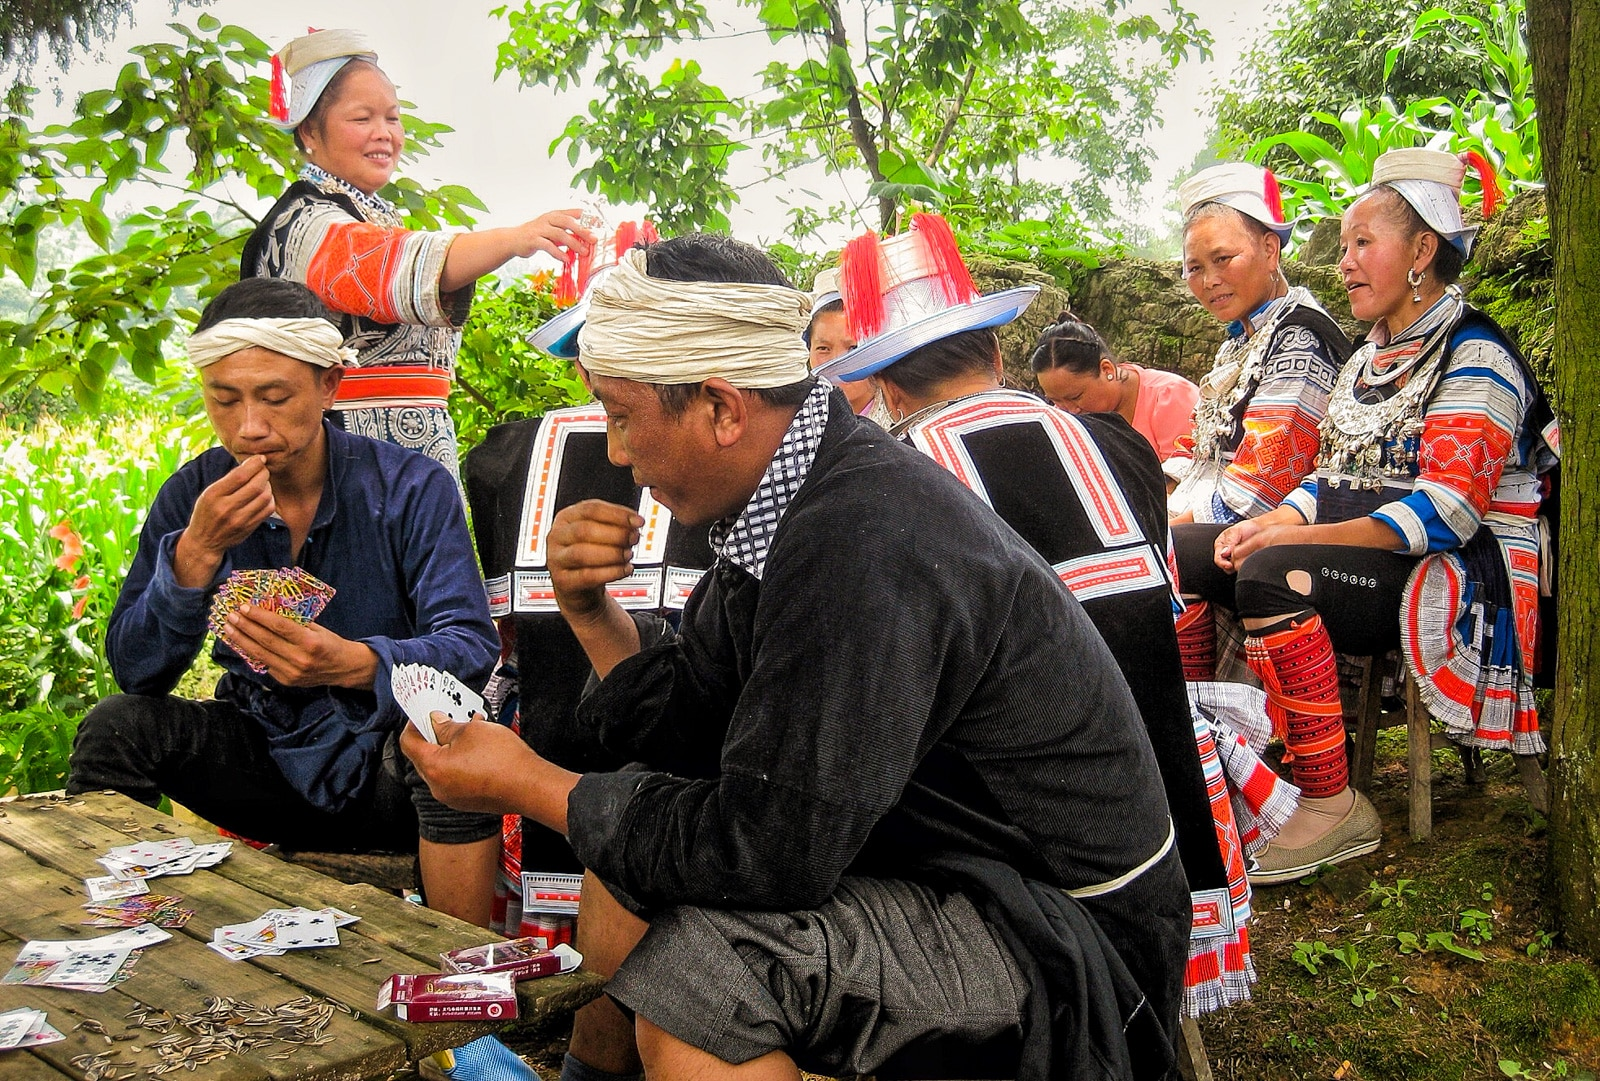 Exploring off the beaten track villages in Guizhou, China - Geija locals in traditional dress eating sunflower seeds